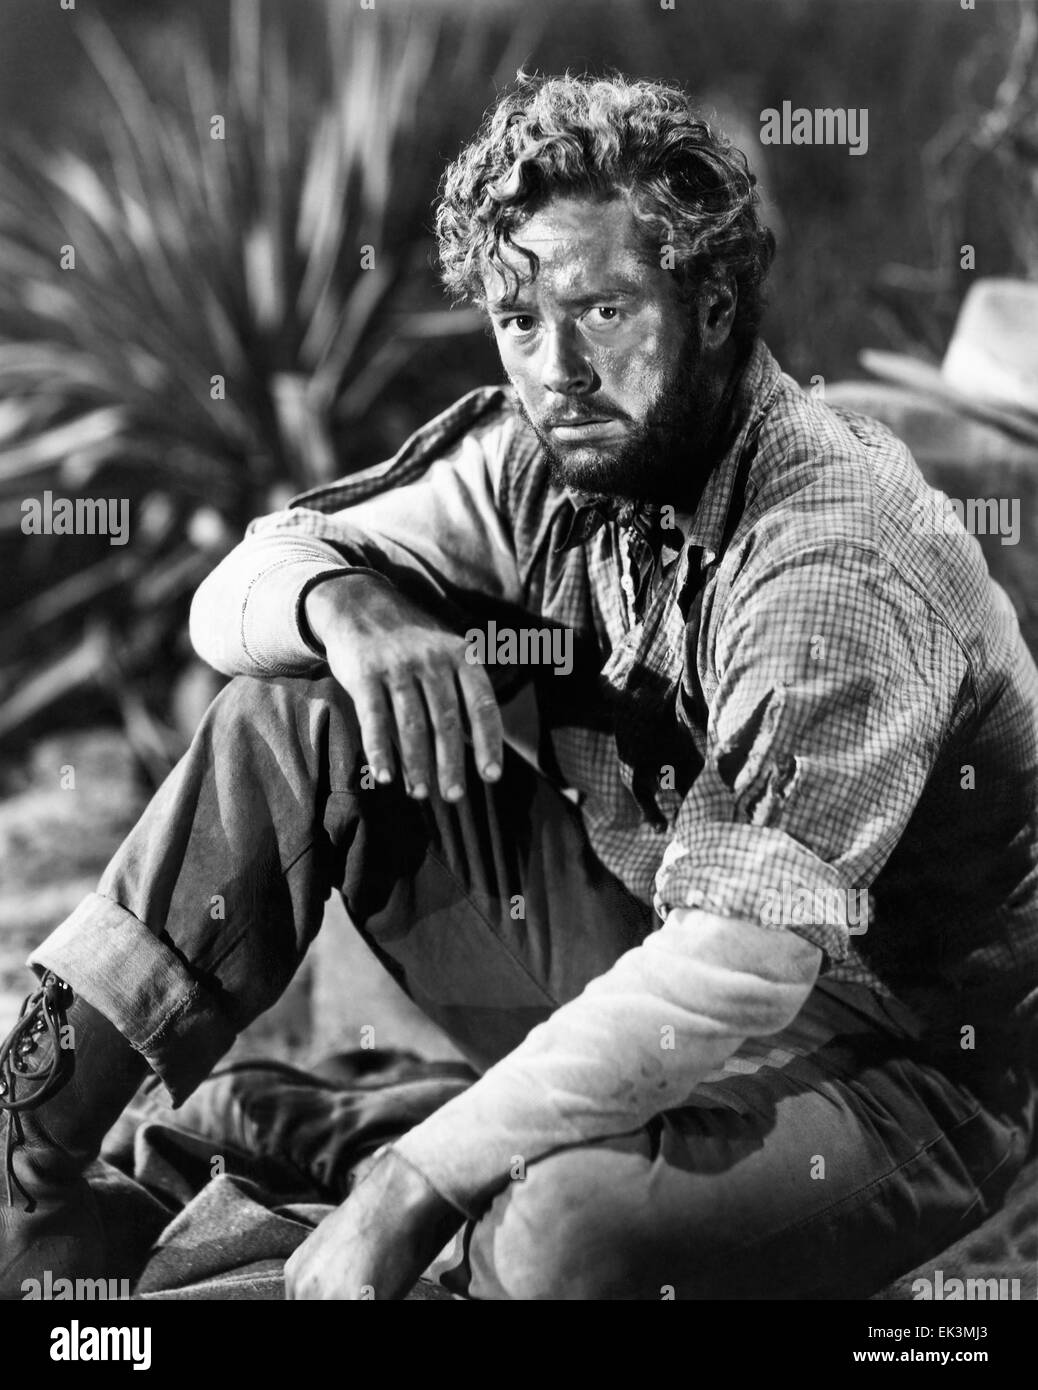 Tim Holt, on-set of the Film 'The Treasure of the Sierra Madre', 1948 - Stock Image